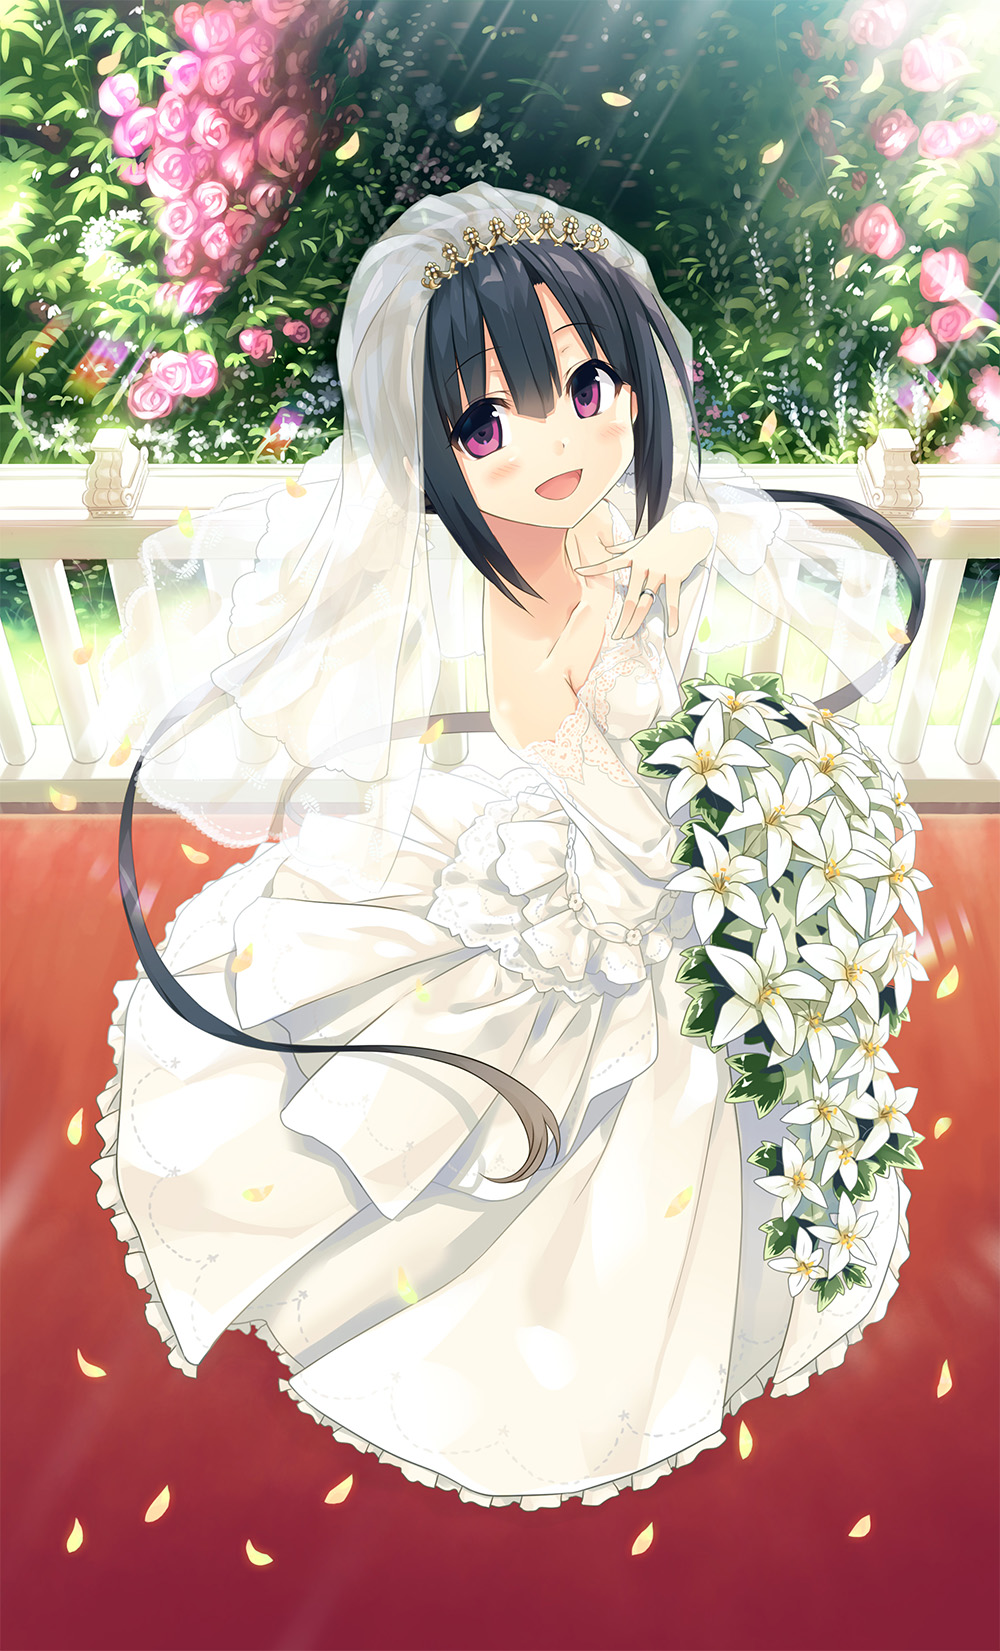 1girl :d bangs bare_shoulders black_hair blush bouquet breasts bridal_veil bride collarbone cura detached_sleeves dress eyebrows_visible_through_hair flower frilled_dress frills from_above hair_between_eyes hand_on_own_chest hand_up hayase_fukami highres holding holding_bouquet jewelry light_rays long_hair long_sleeves looking_at_viewer looking_to_the_side maitetsu official_art open_mouth pink_flower pink_rose pleated_dress railing ring rose see-through sidelocks sleeves_past_wrists small_breasts smile solo standing strapless strapless_dress twintails veil very_long_hair violet_eyes wedding_band wedding_dress white_dress white_flower